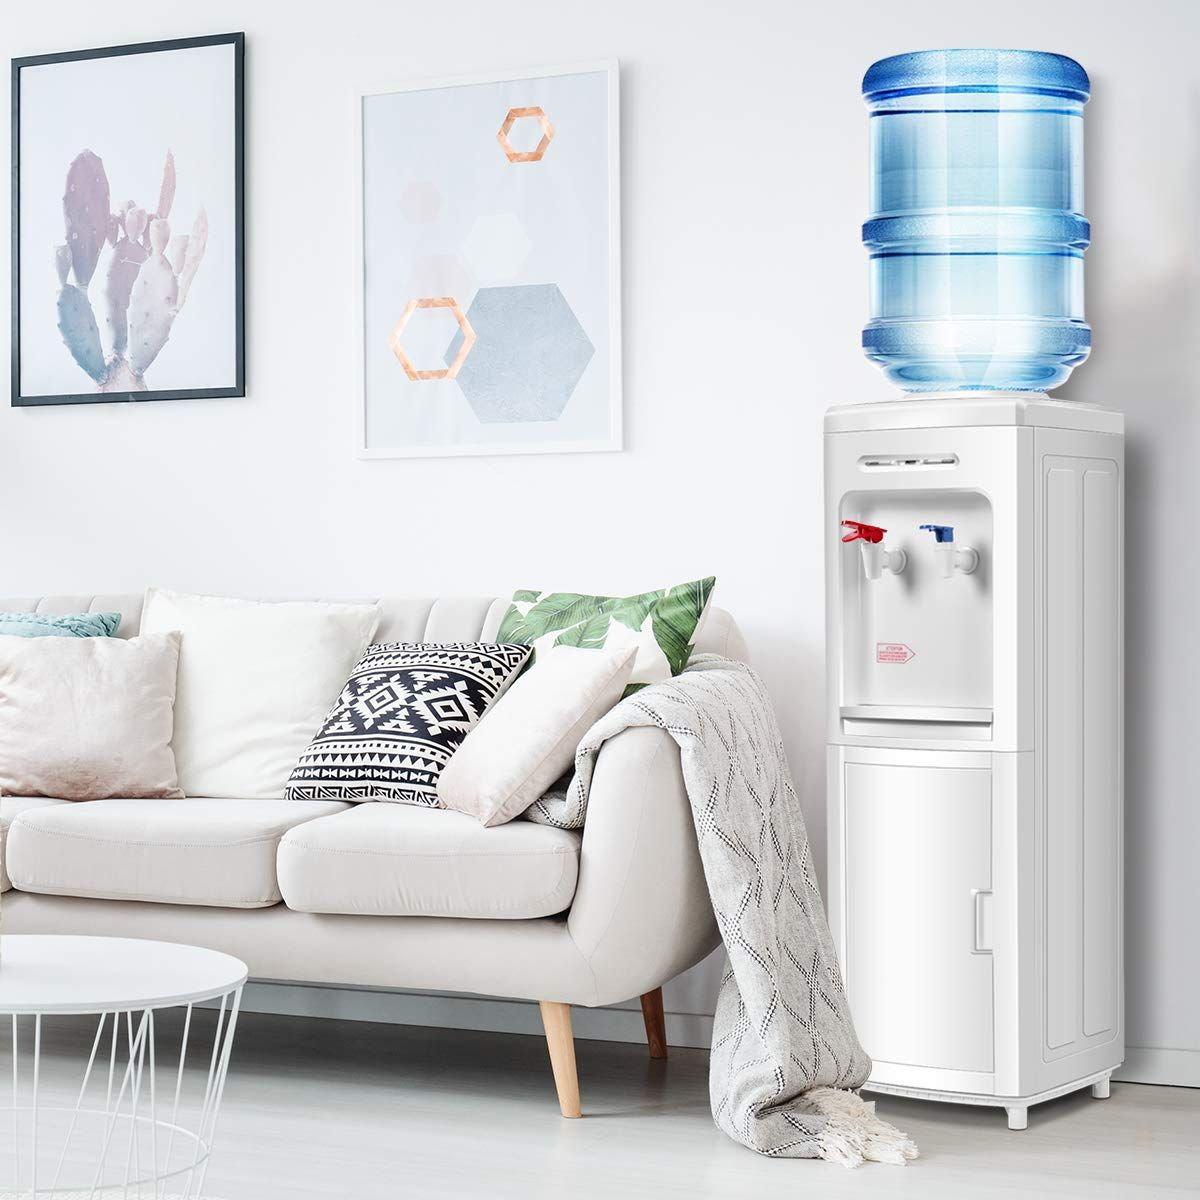 Giantex 5 Gallon Electric Top Loading Water Cooler Dispenser White With Storage Cabinet Water Dispenser Hot Water Dispensers Water Coolers